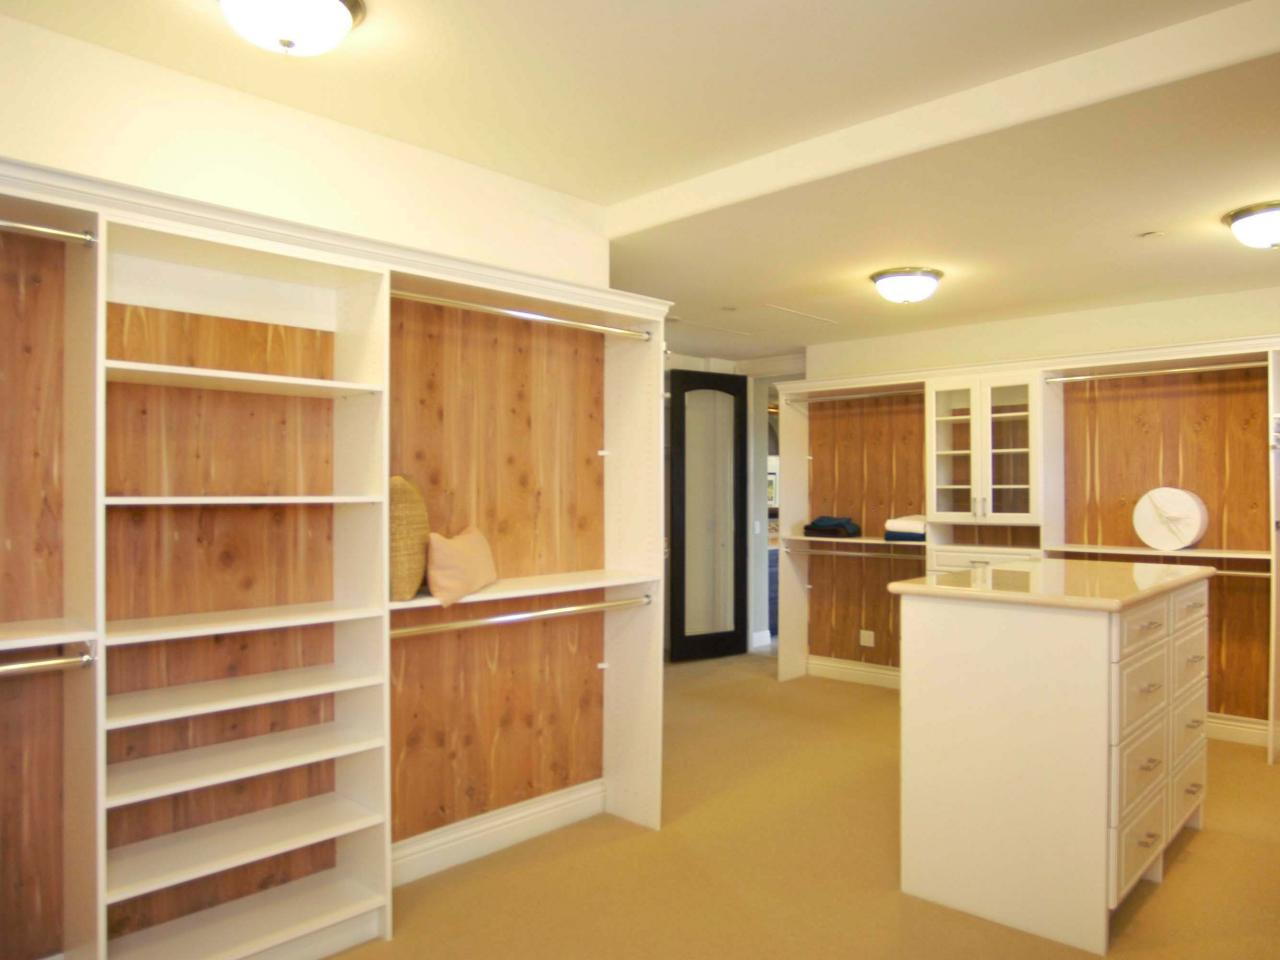 Inspiring Storage System Design Ideas with Cedar Closet Kit: Cedar Closets | Cedar Closet Kit | Cedar Closet Hangers